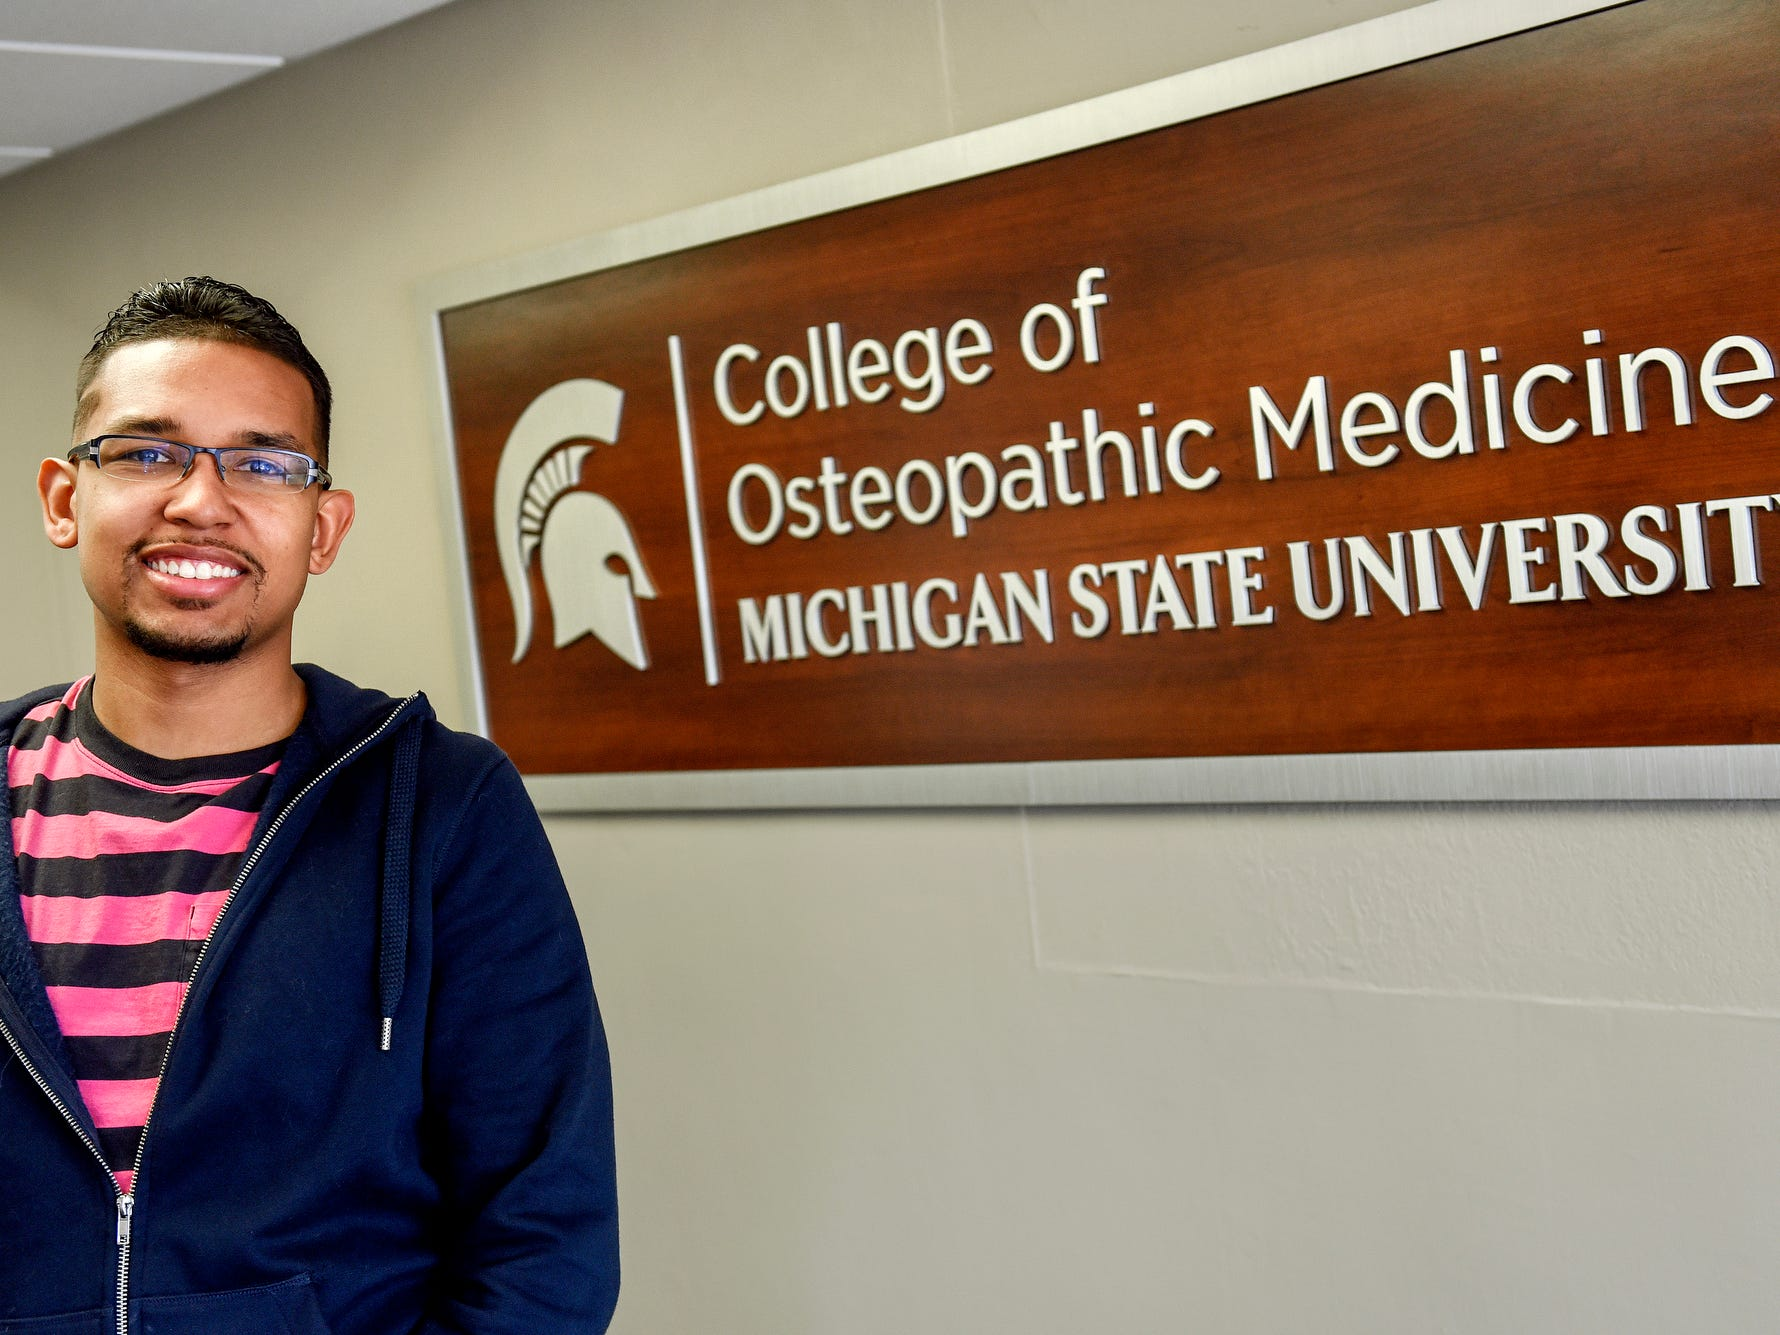 Robert Ray Jr., photographed on Wednesday, March 27, 2019, at the MSU College of Osteopathic Medicine offices in Fee Hall, will be an emergency medicine resident in Allentown, Pennsylvania, after graduating from the College of Osteopathic Medicine in May.